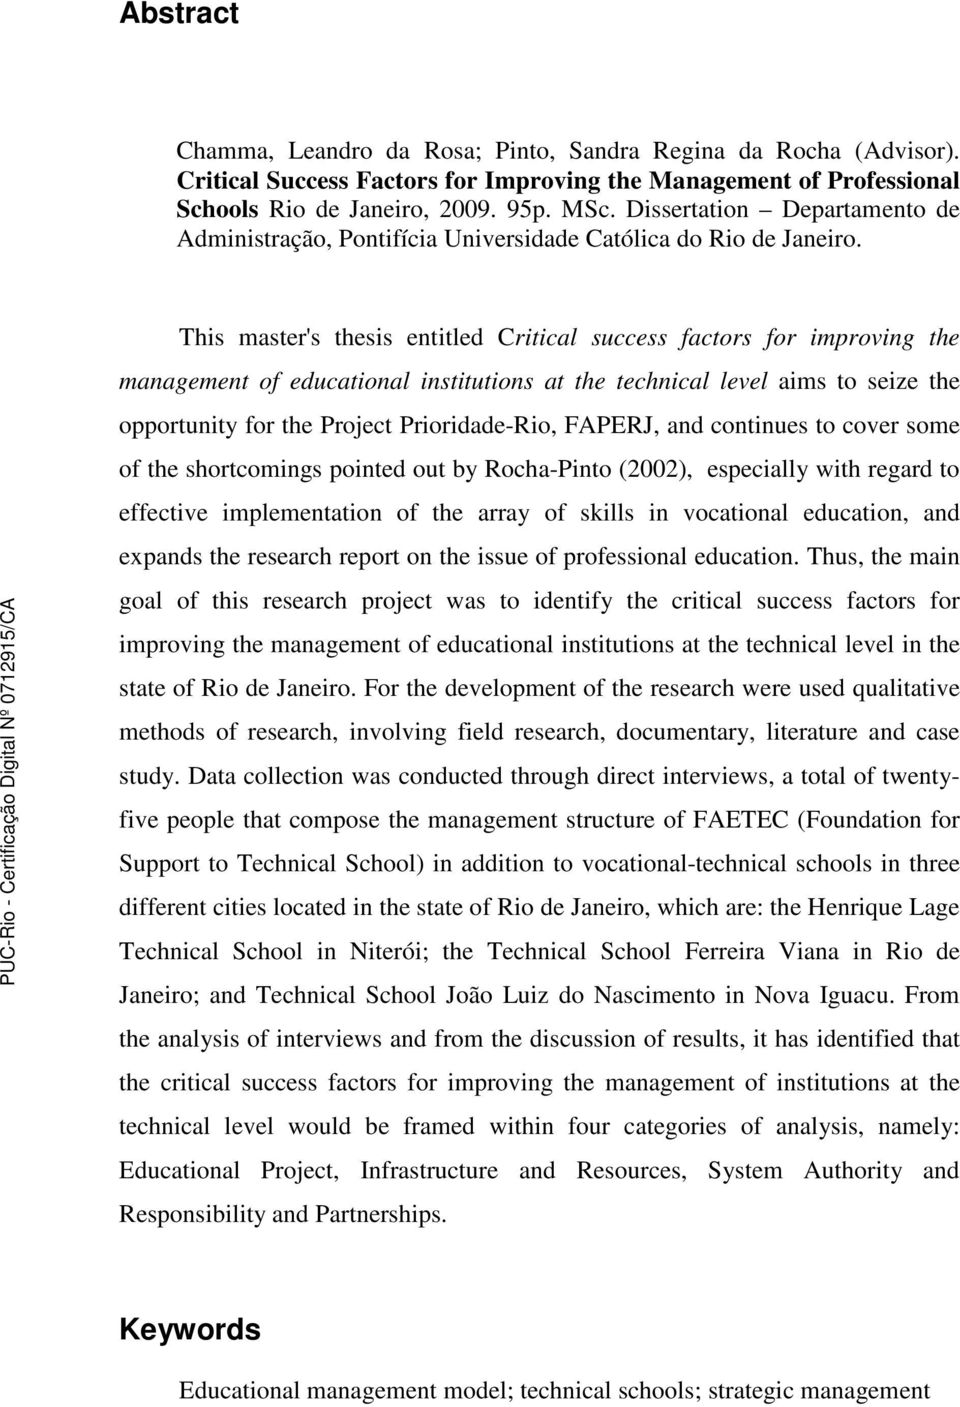 This master's thesis entitled Critical success factors for improving the management of educational institutions at the technical level aims to seize the opportunity for the Project Prioridade-Rio,